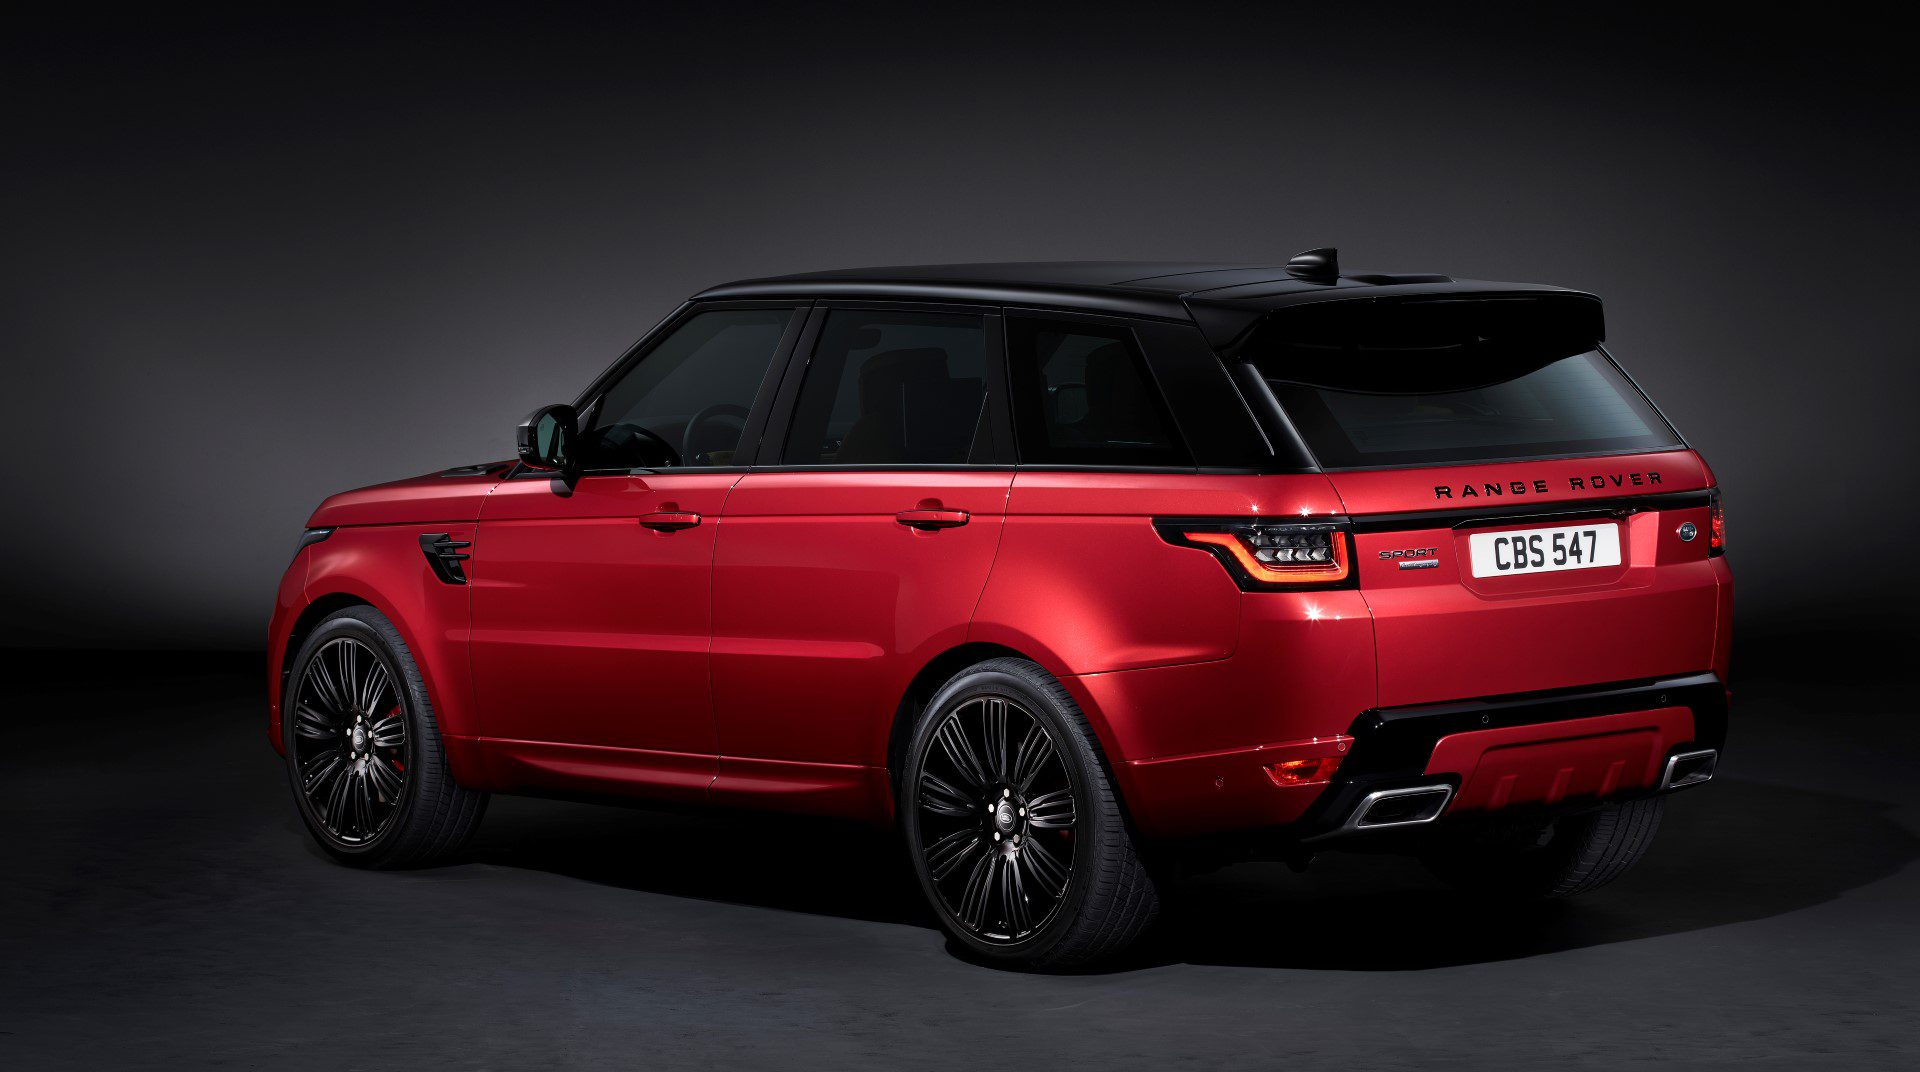 range rover sport van top tot teen vernieuwd. Black Bedroom Furniture Sets. Home Design Ideas